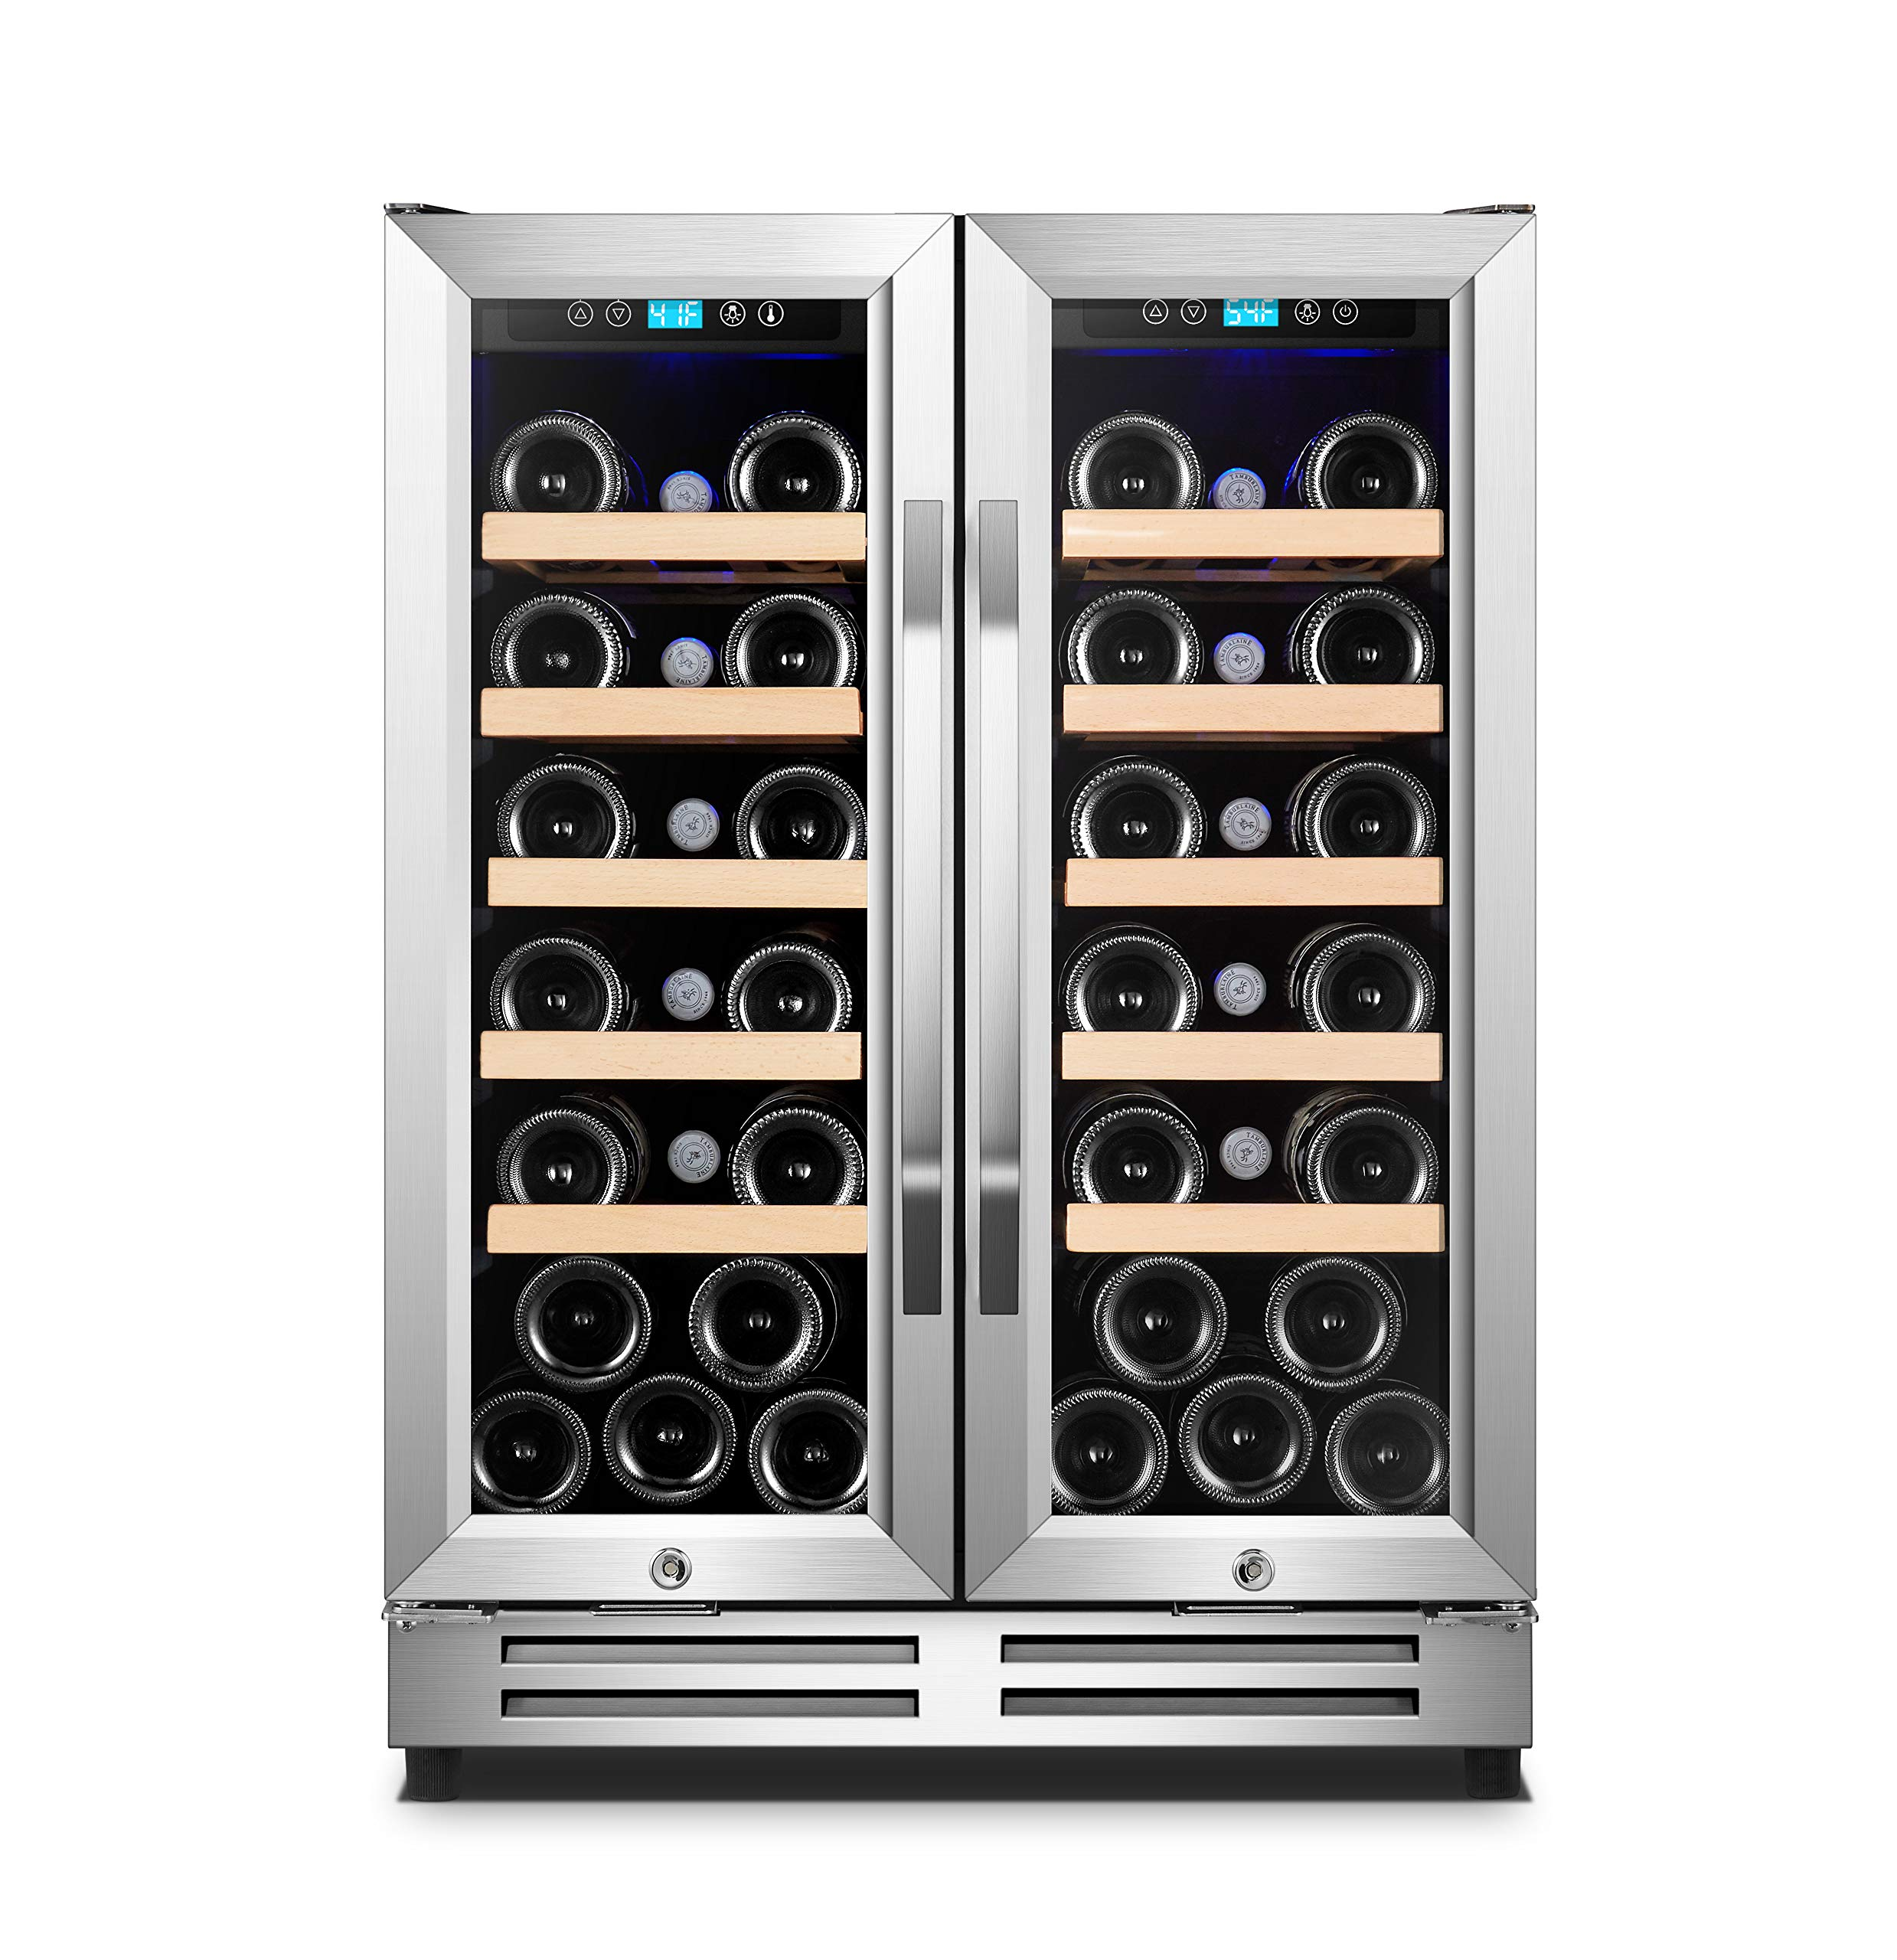 Karcassin Wine Cooler Refrigerator - Compressor Wine Chiller - Dual Temp Zones wine fridge for Red & White - Stores upto 36 Bottles - Silent with Low Vibrations - Freestanding or Built-in by Karcassin